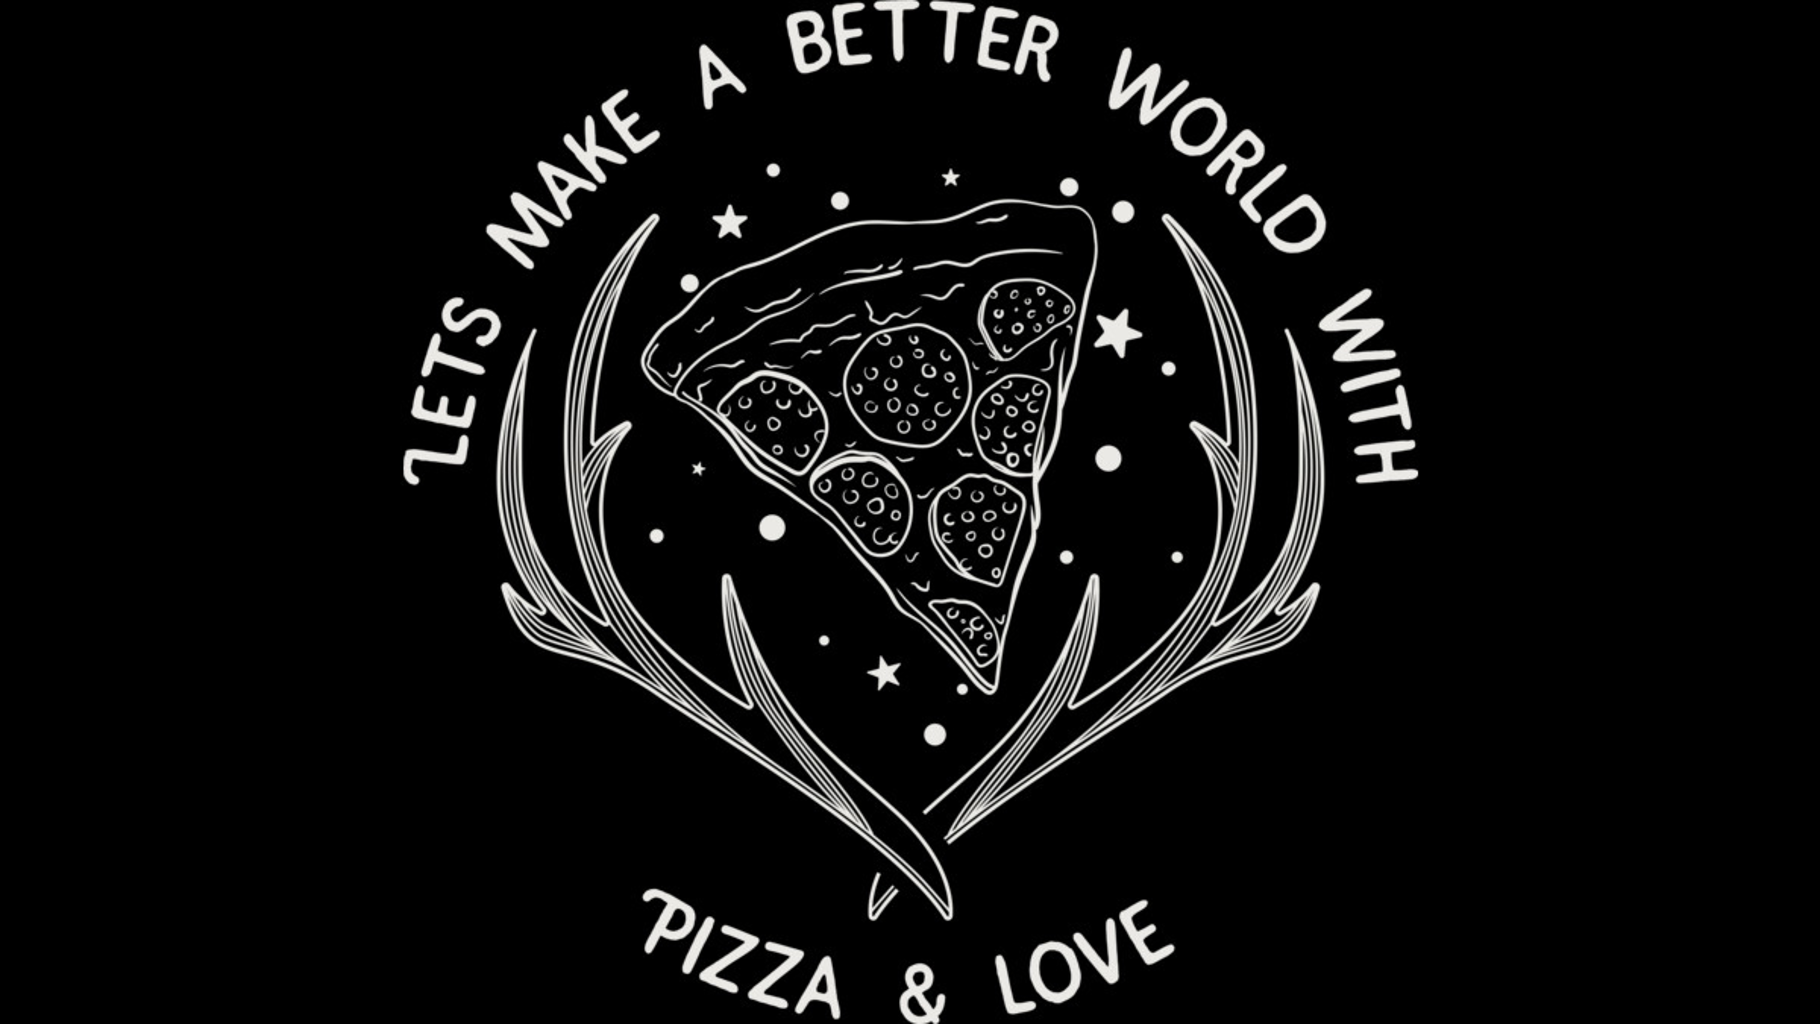 Design by Humans: Pizza & Love